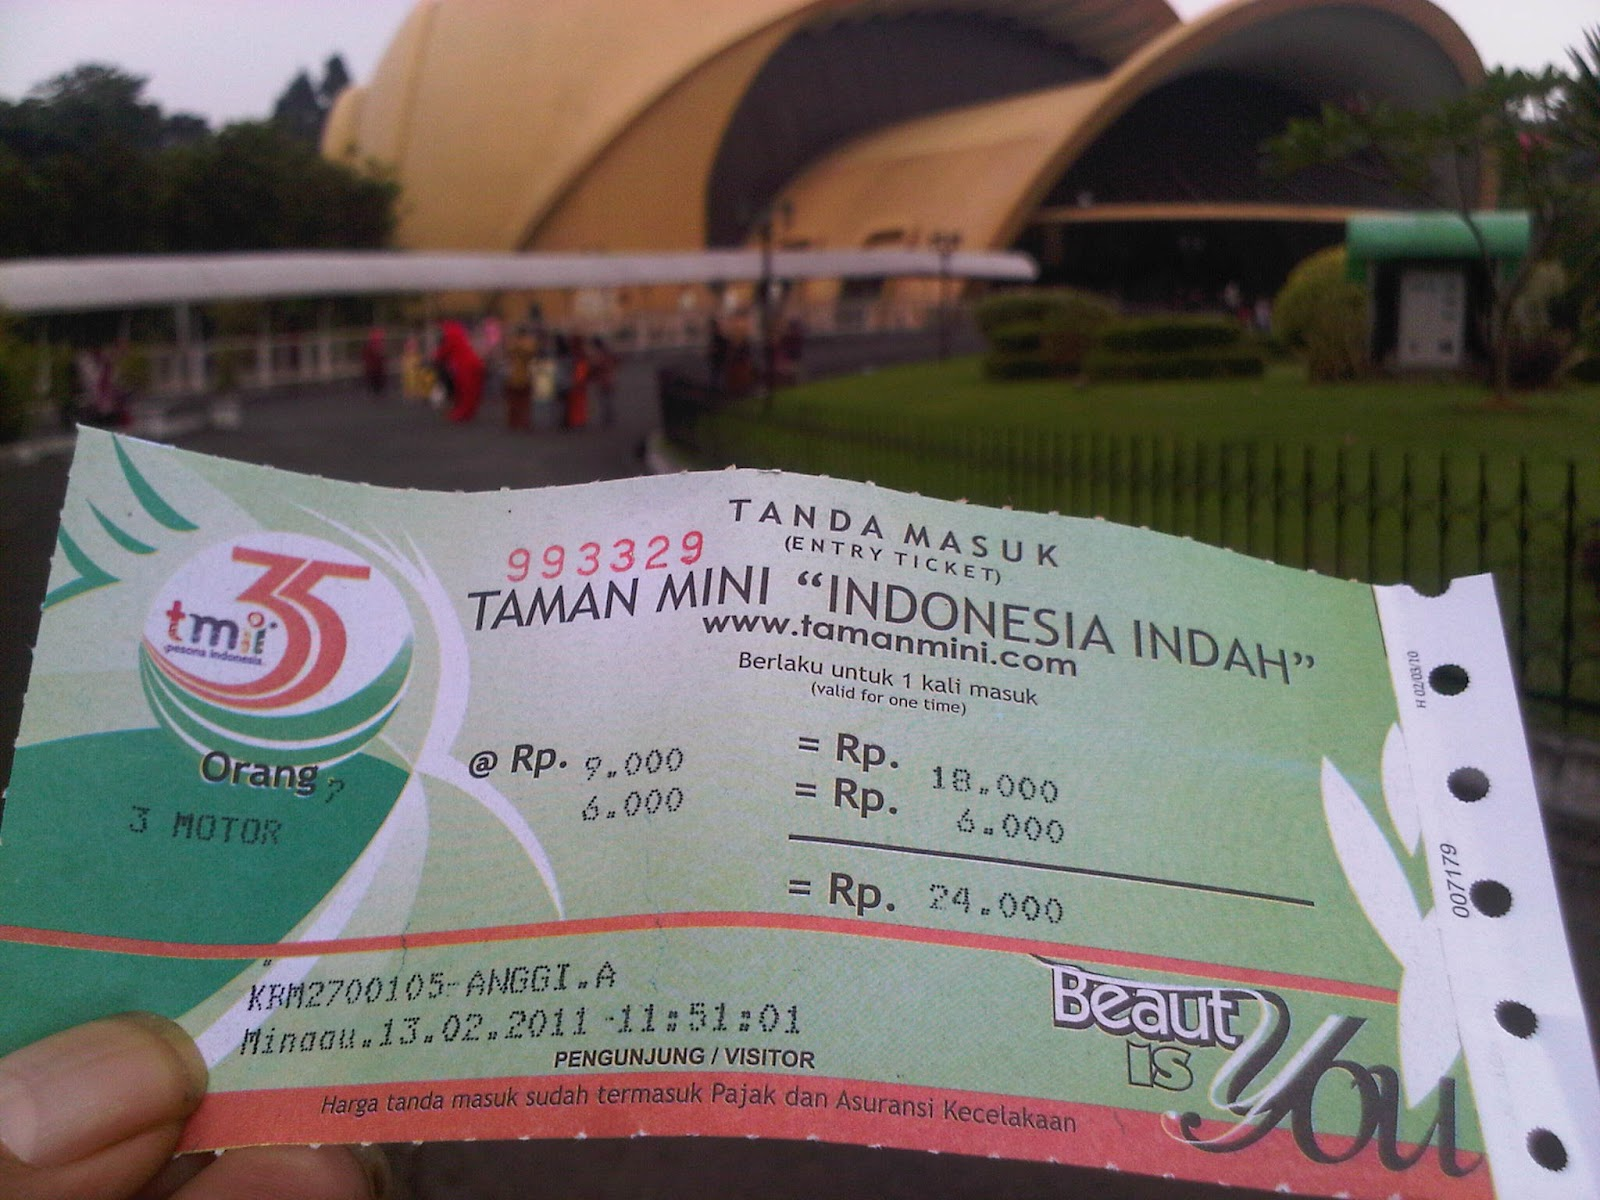 Cheap Ticket Of Taman Mini Indonesia Indah The Tracks Of Adventurer